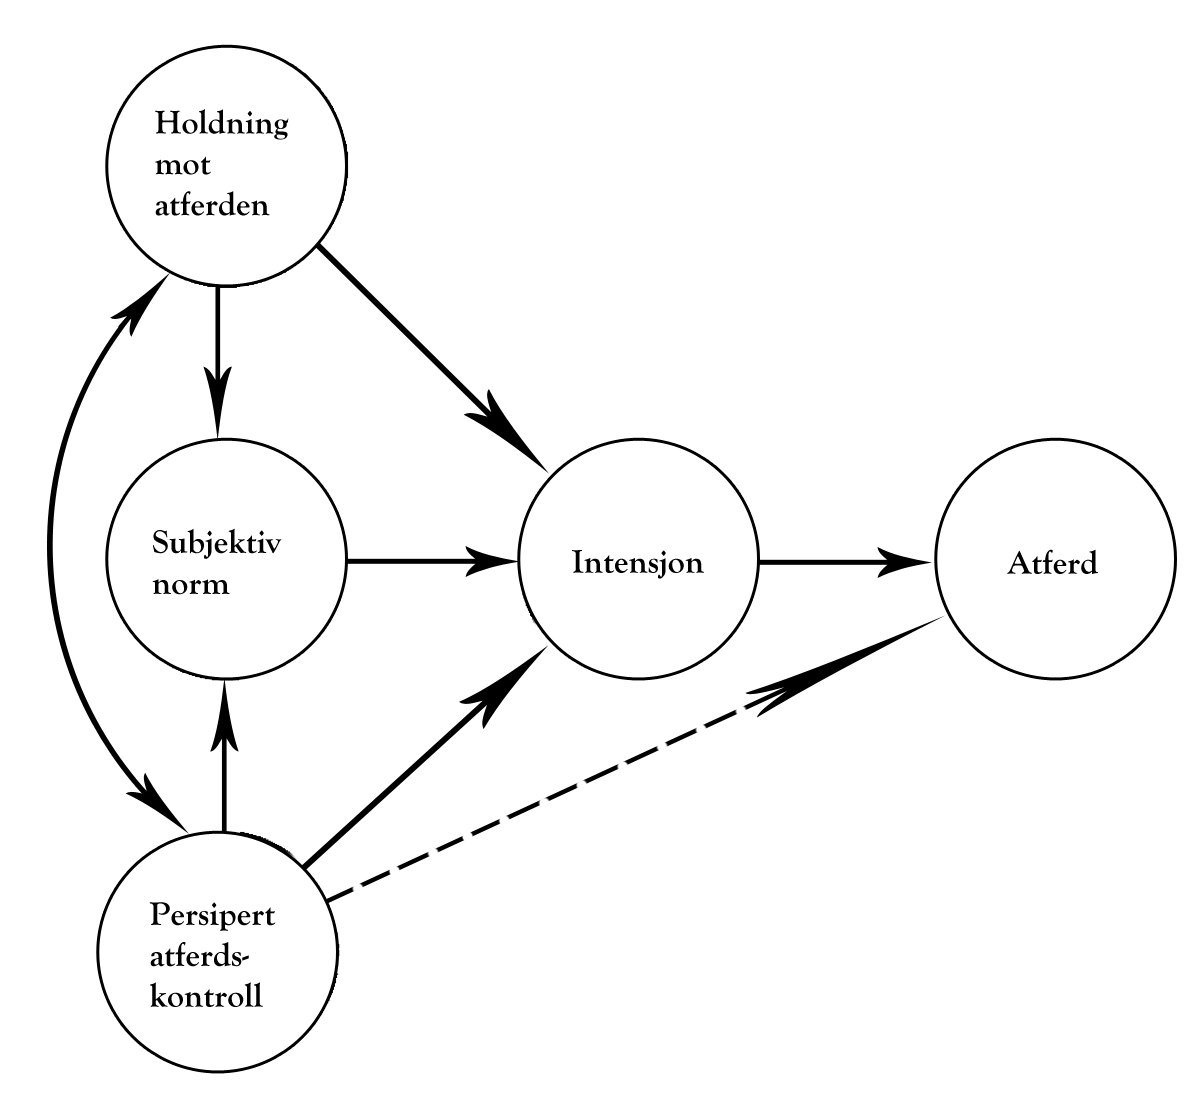 the original fishbein attitude model Model of behavioral intentions consistent with the  between behavior and both intention and the model's attitudinal and normative  enberg (1956), and fish' bein (1963), attitude toward a  respondents in the initial survey were 270 white.